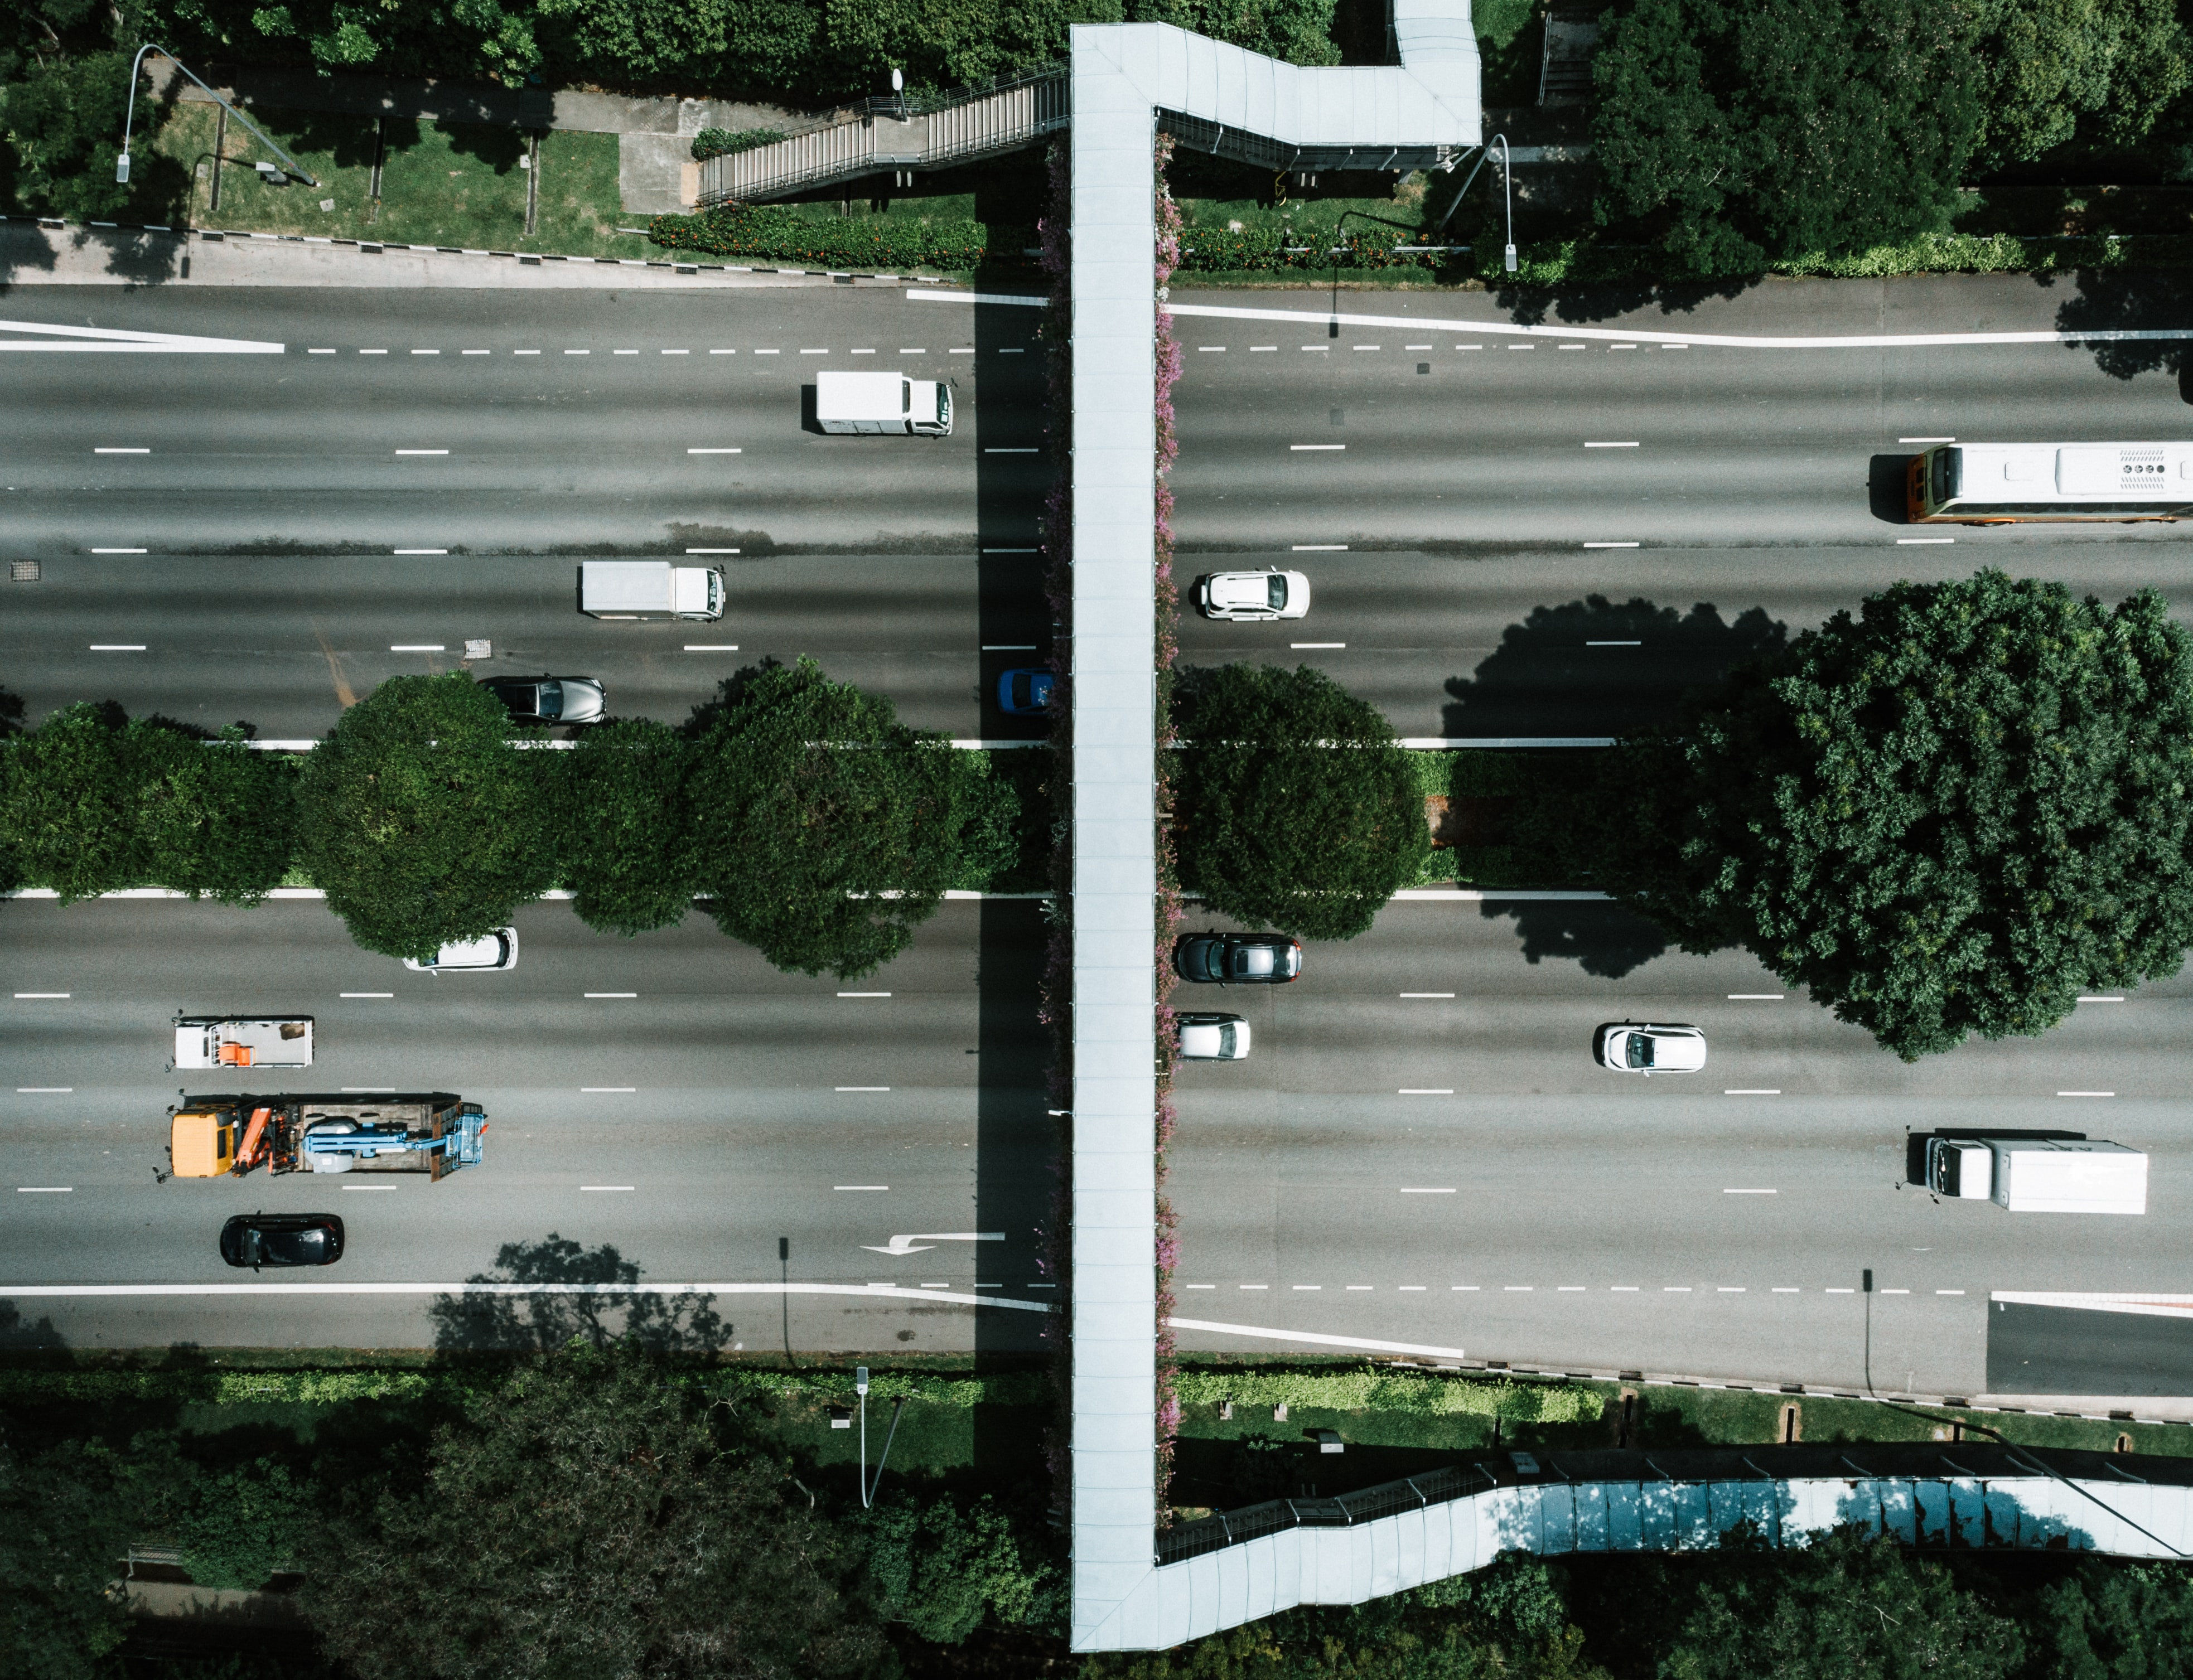 aerial photography of vehicle traveling on road during daytime